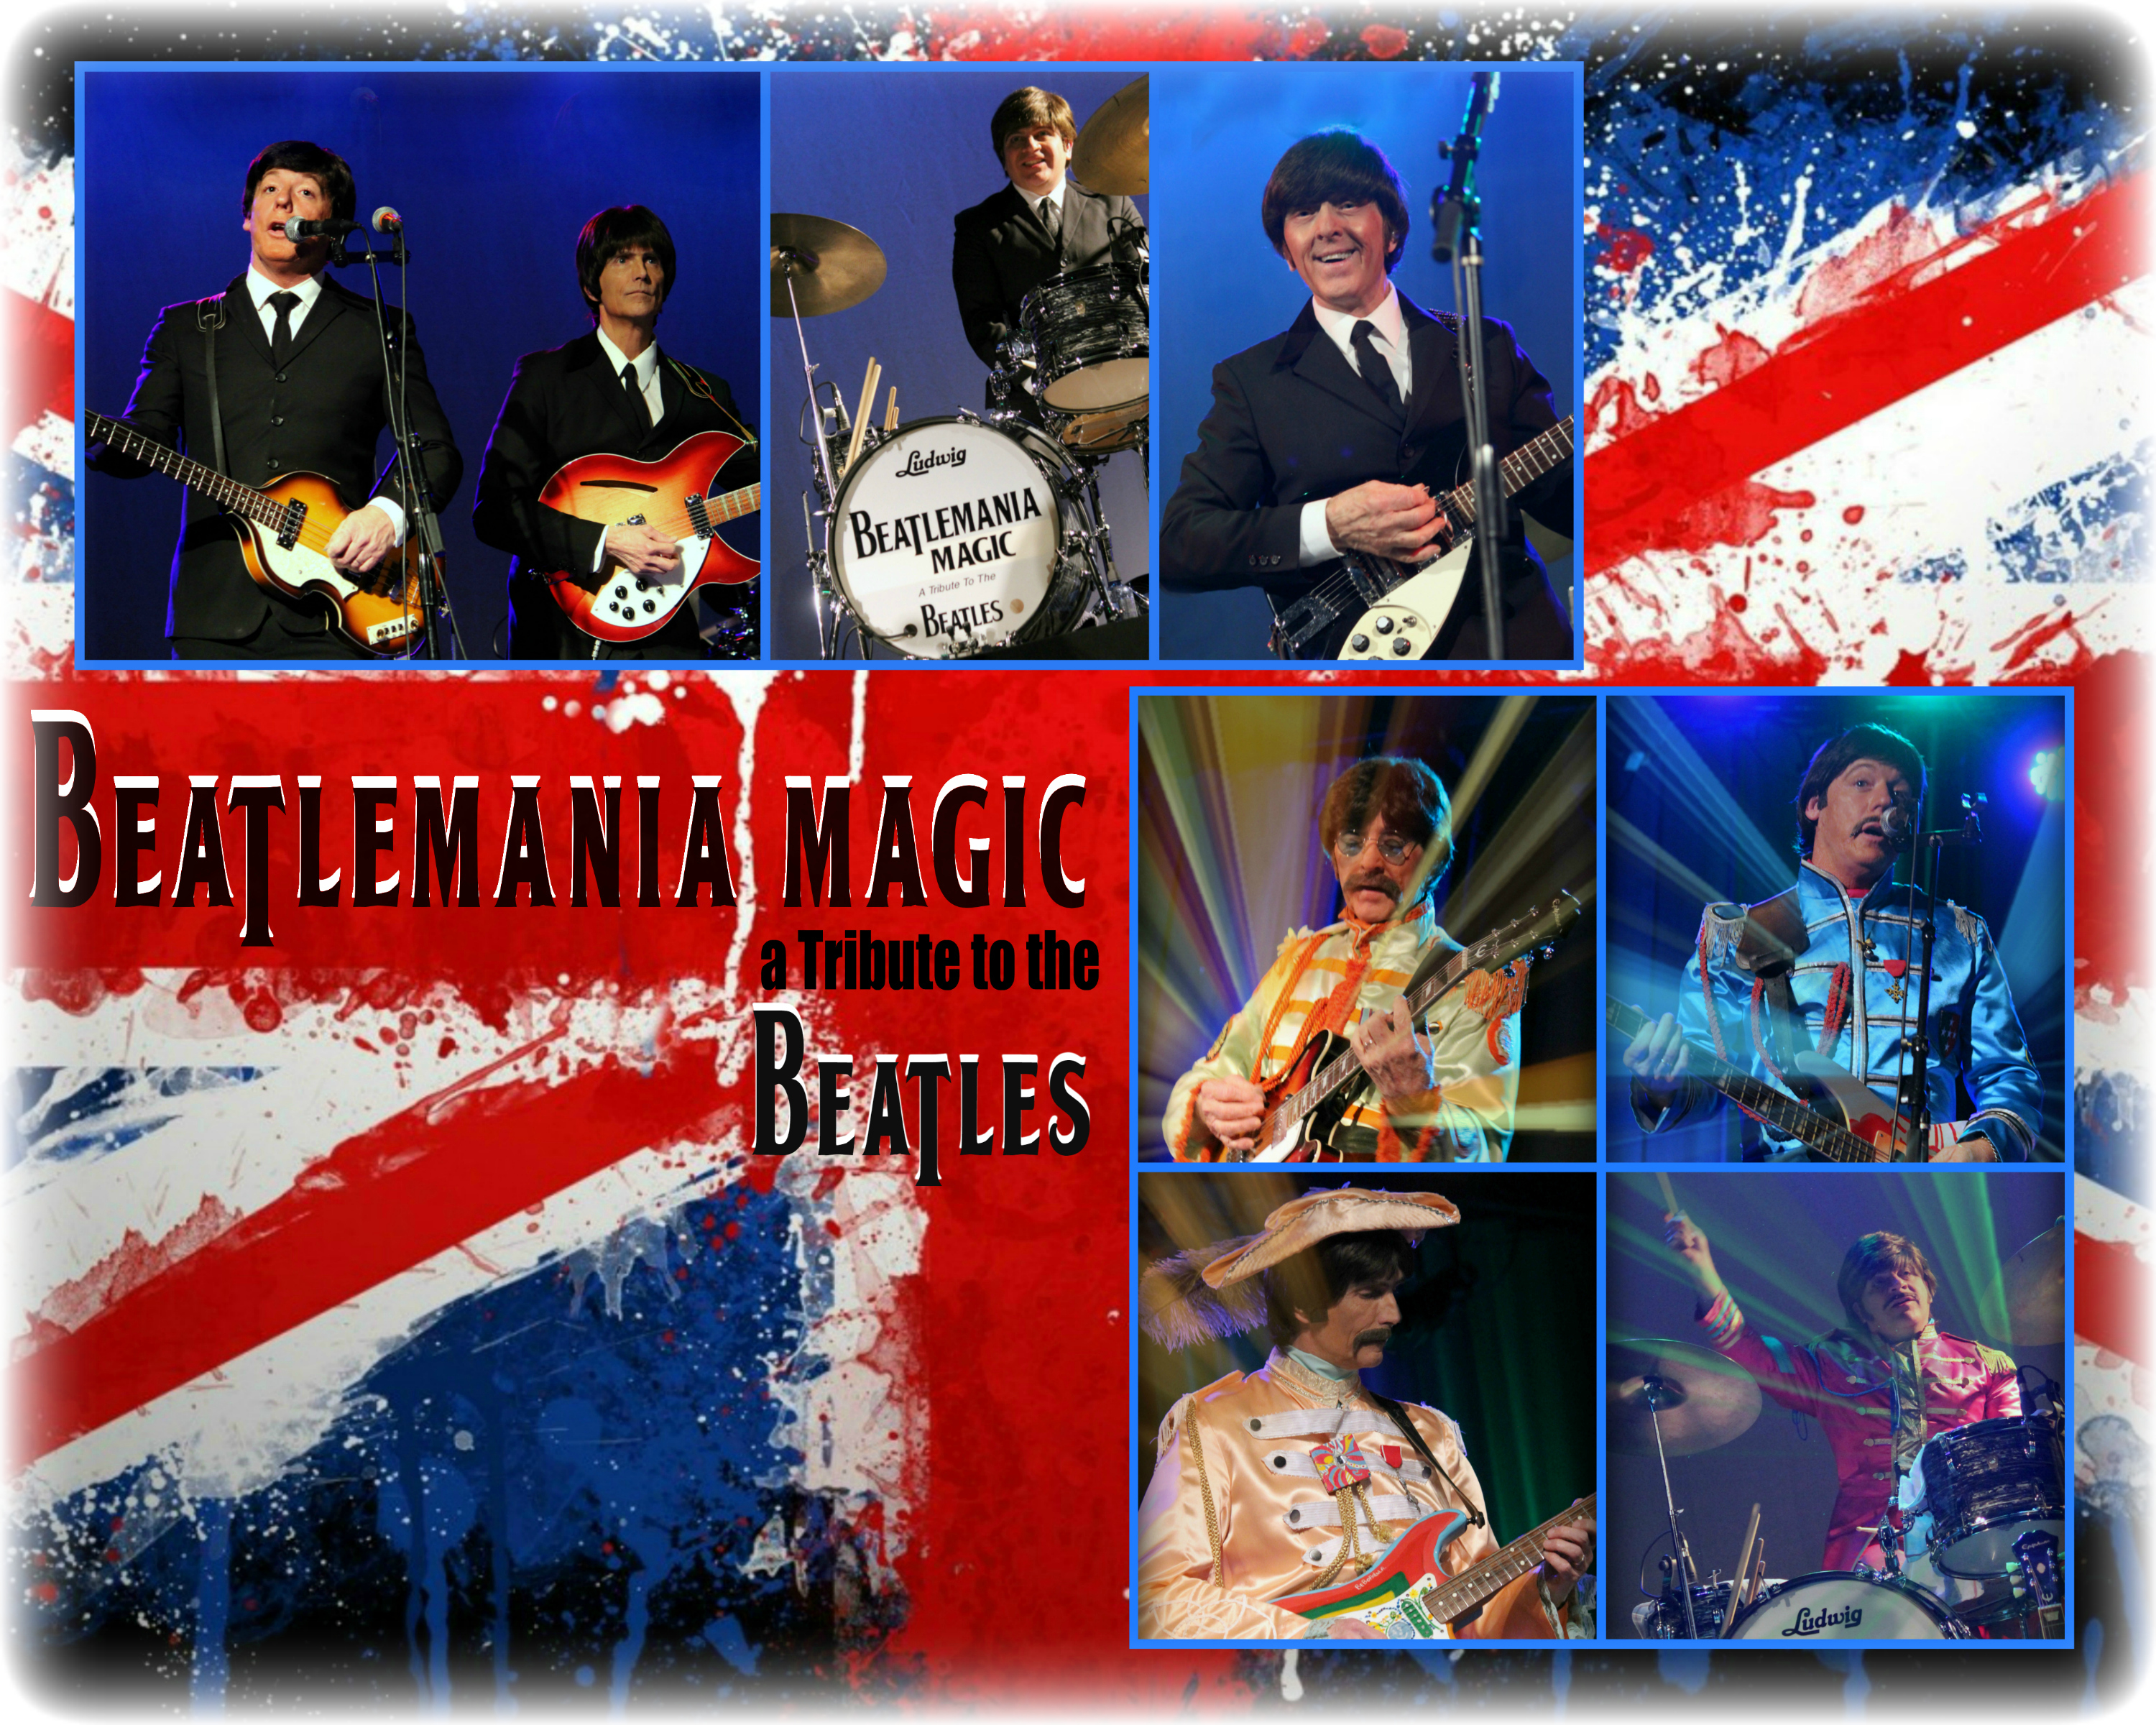 Beatlemania Magic Promo